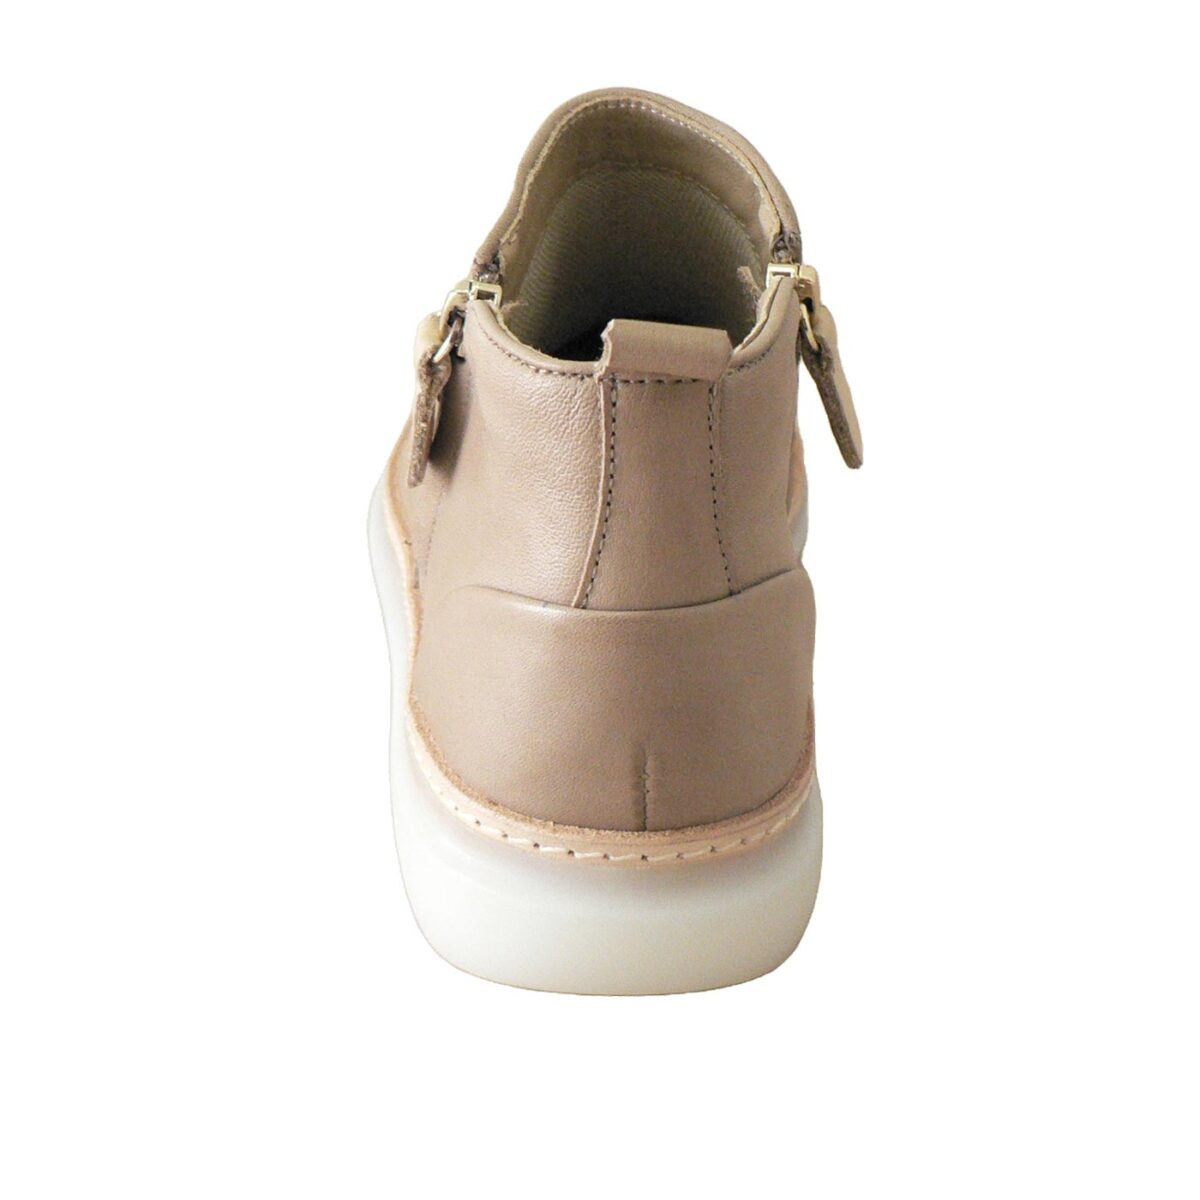 EOS Iconic Taupe